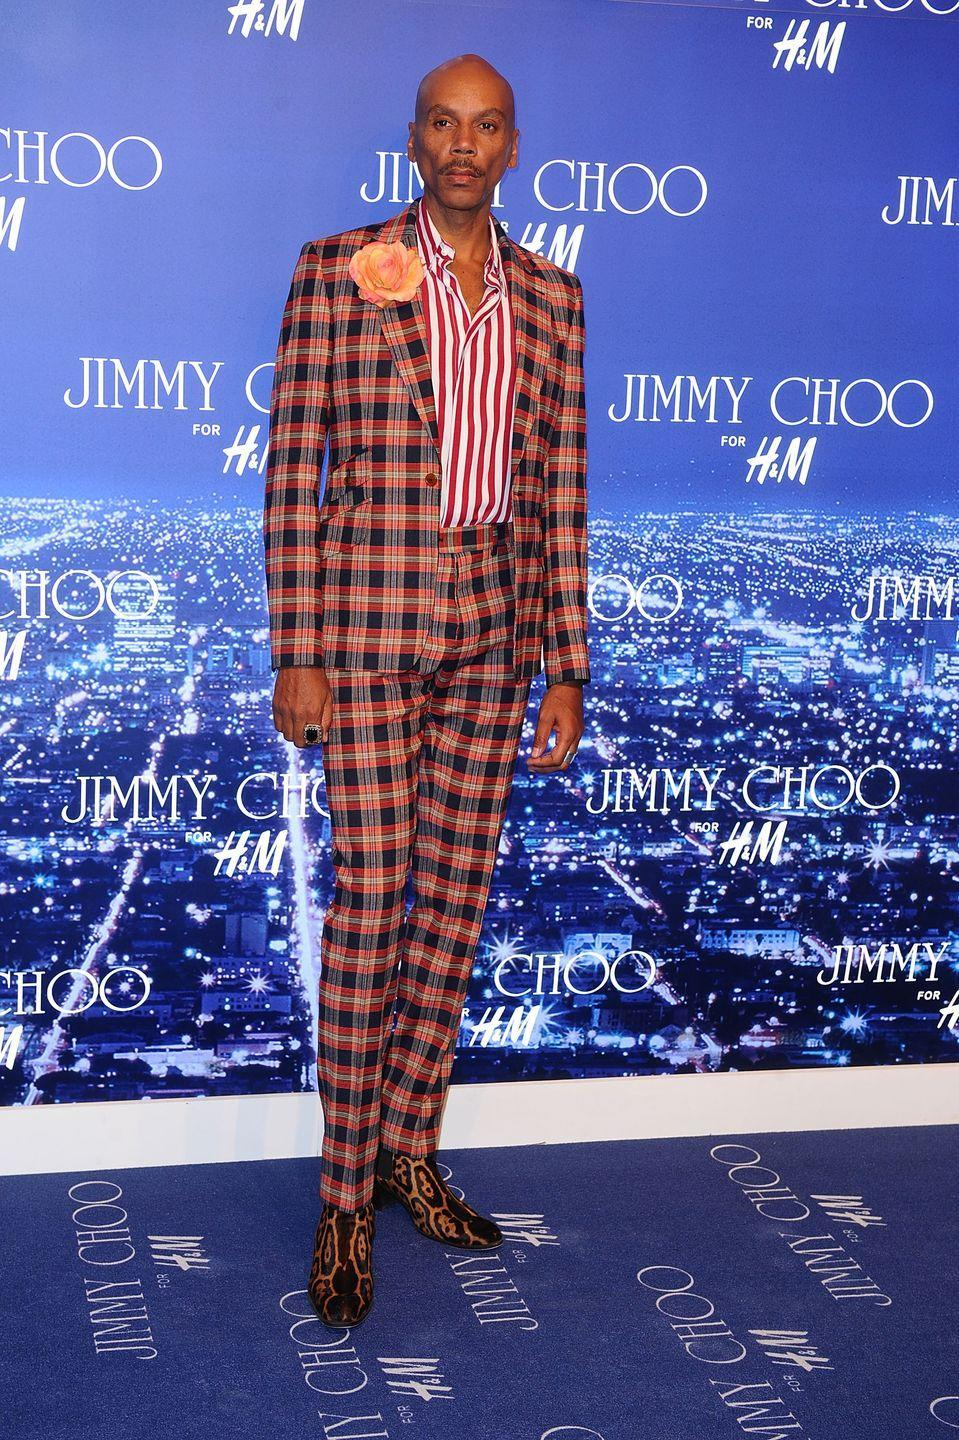 <p>In the last decade or so, RuPaul has most often been spotted on the red carpets (or in this case blue) wearing some perfectly tailored suits, and this pattern mix is spot on. </p>